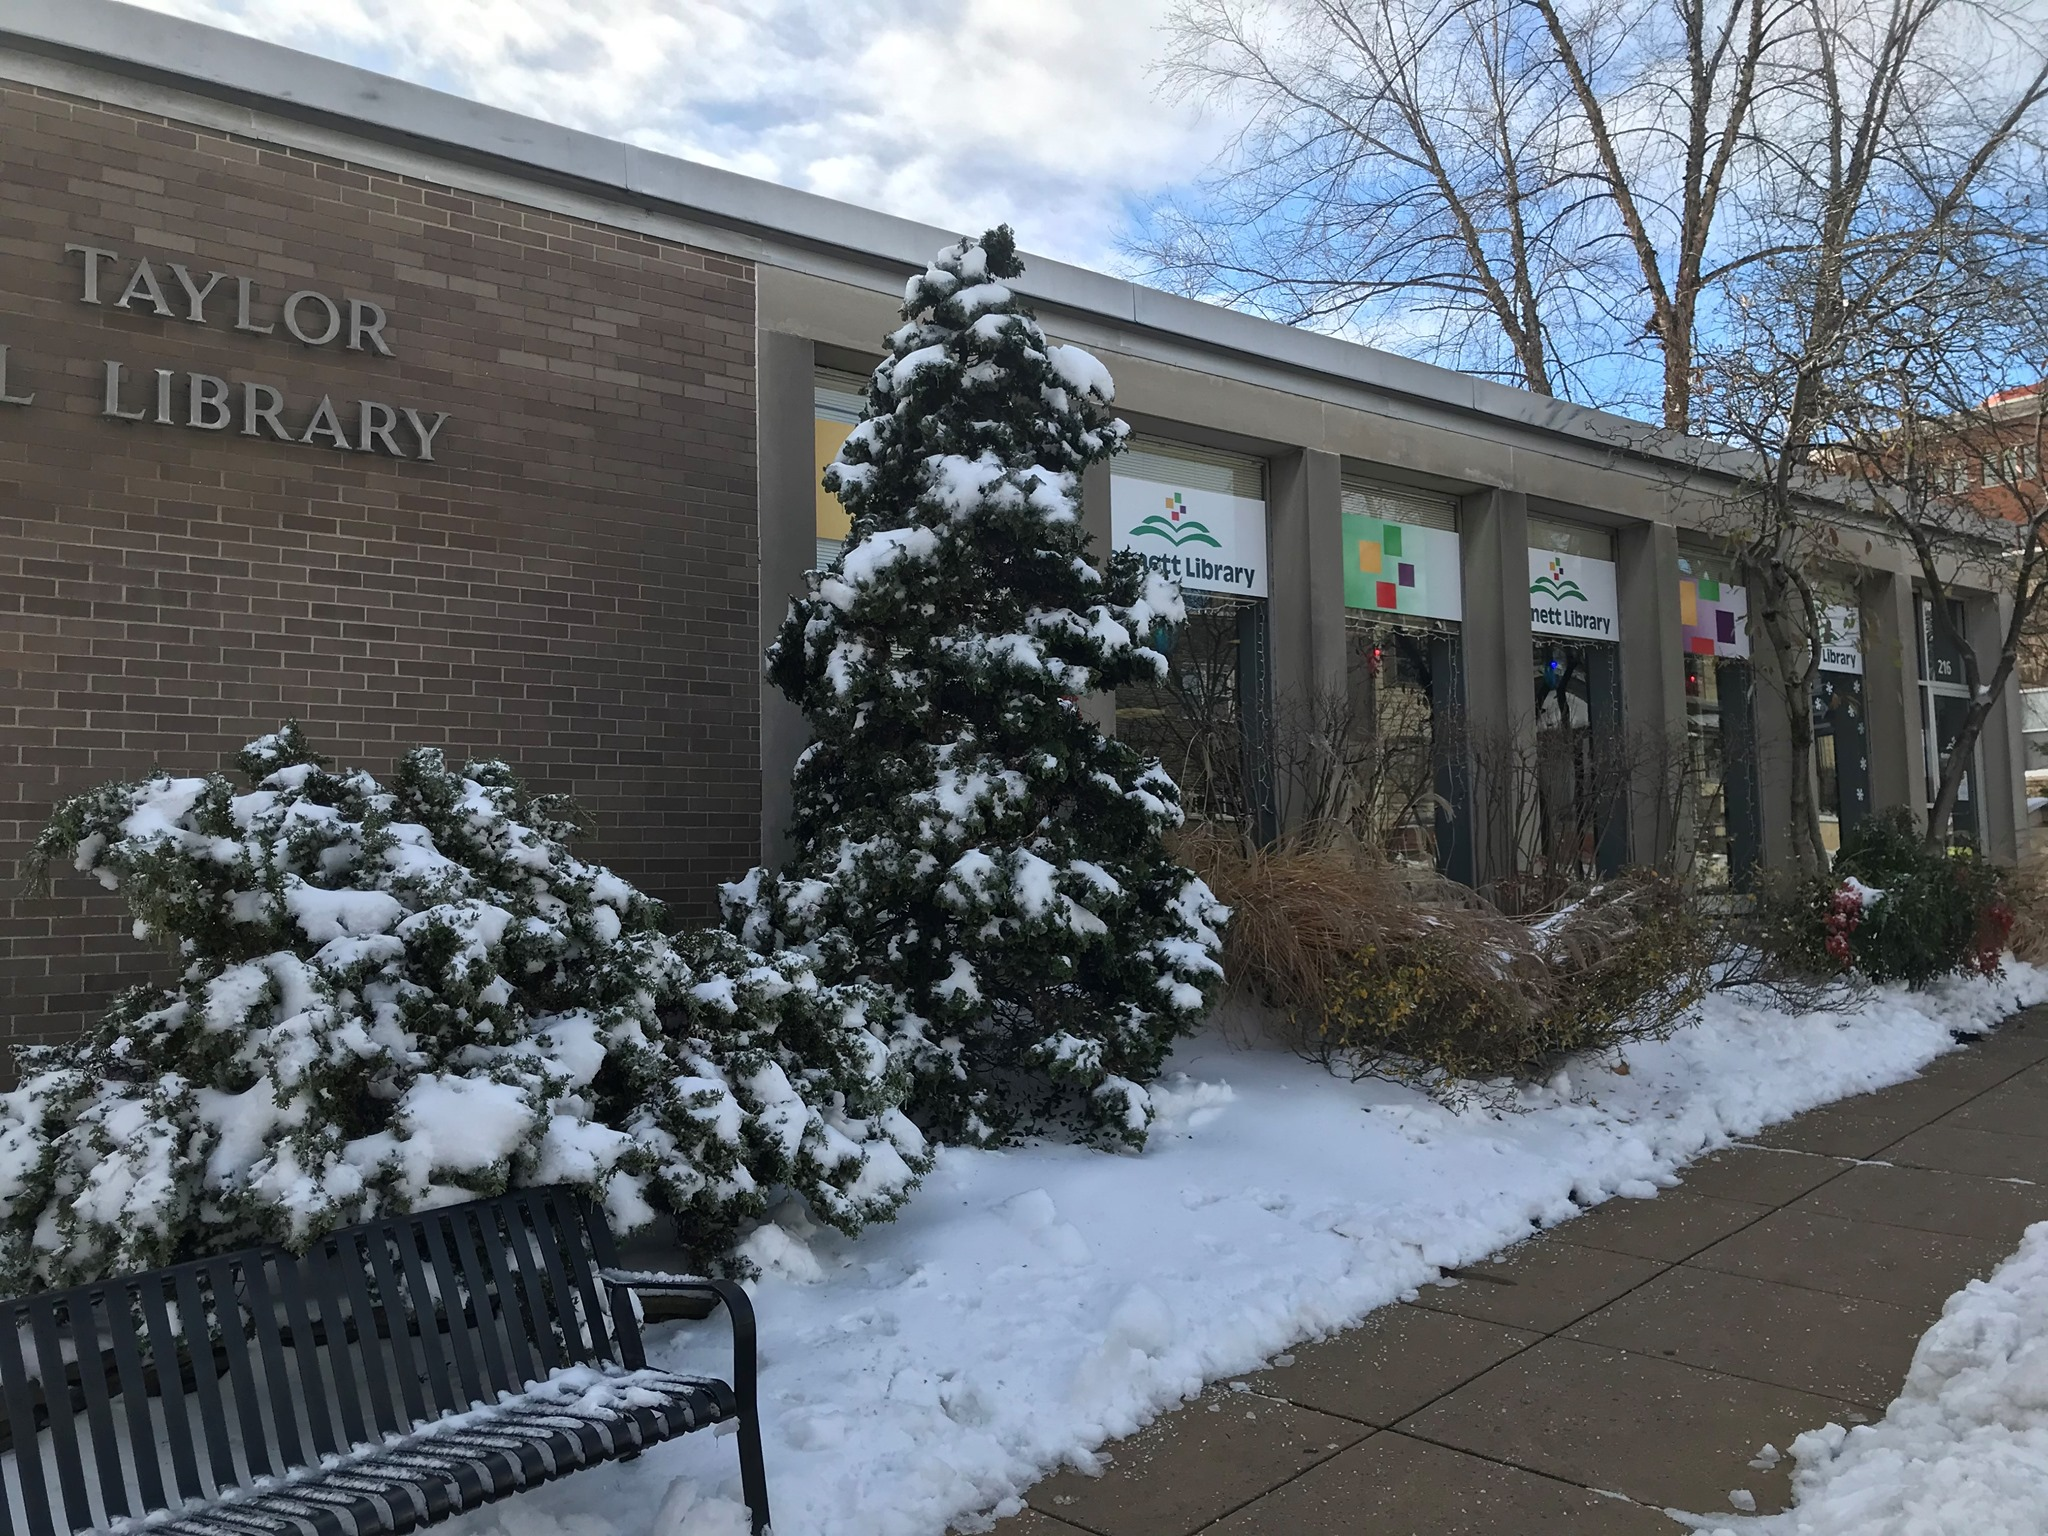 The exterior of Kennett Library. surrounded by snow